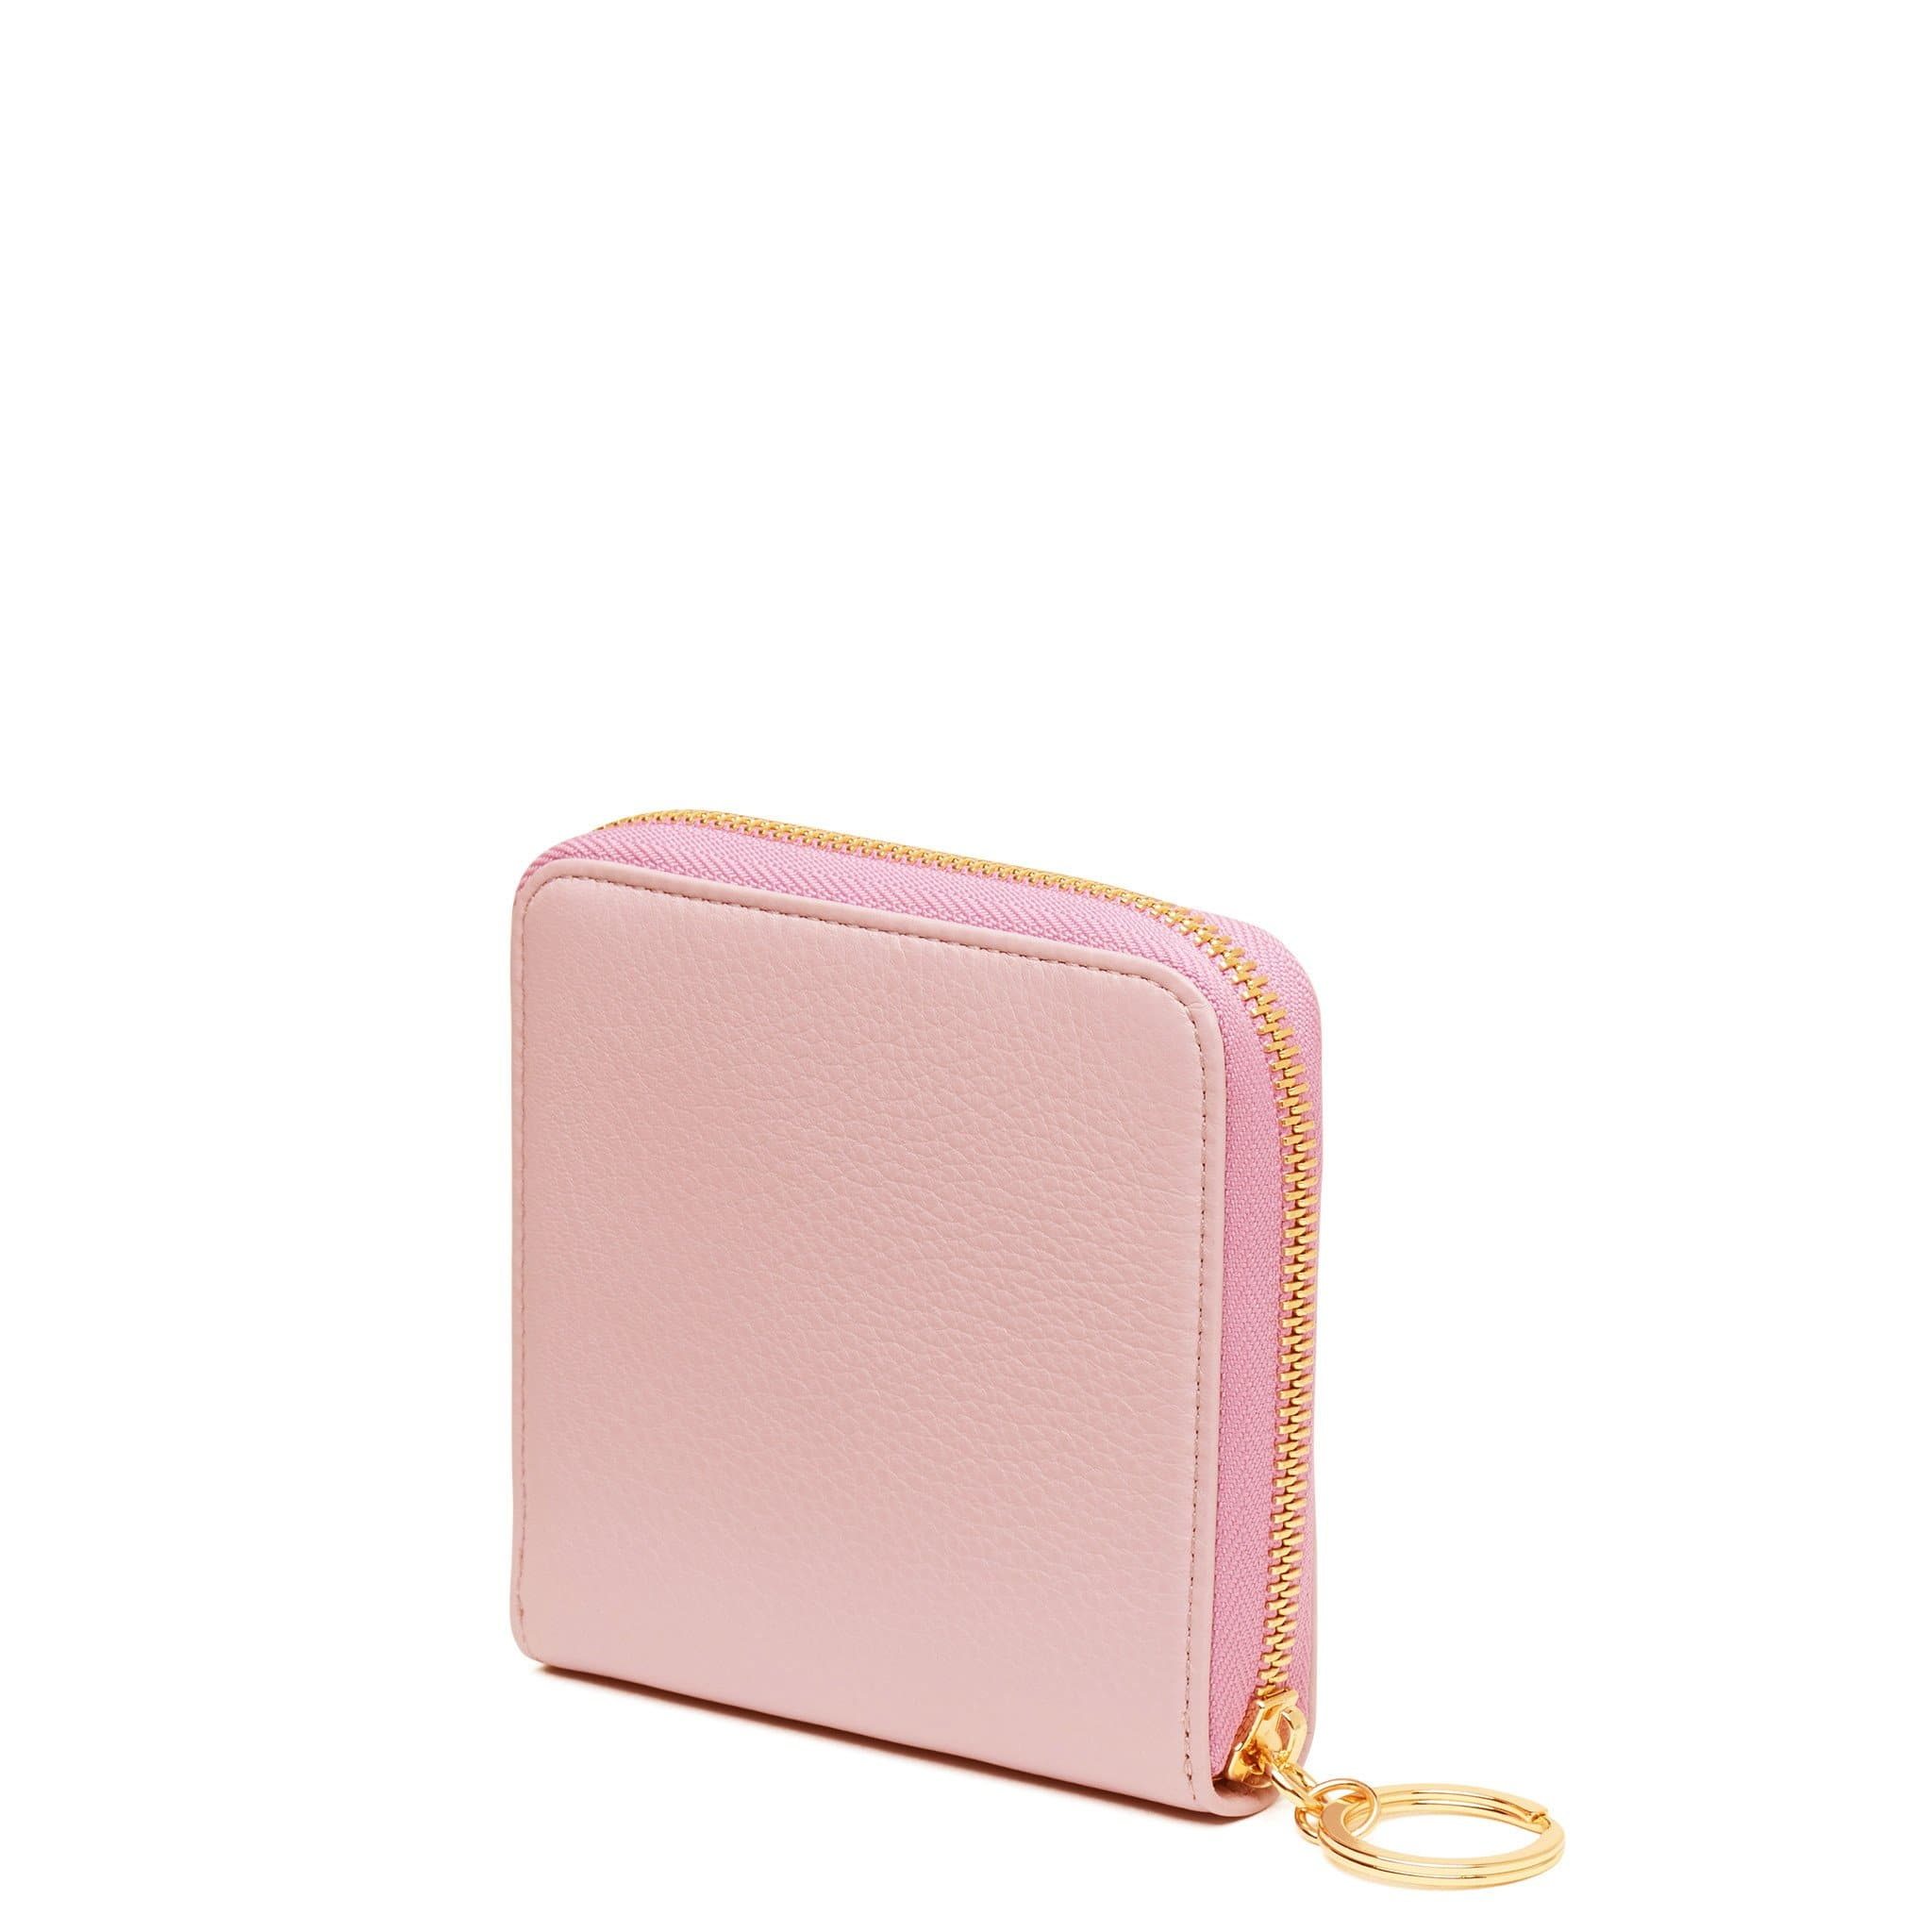 Half Zip Around Wallet - Rose Pink - OAD NEW YORK - 3